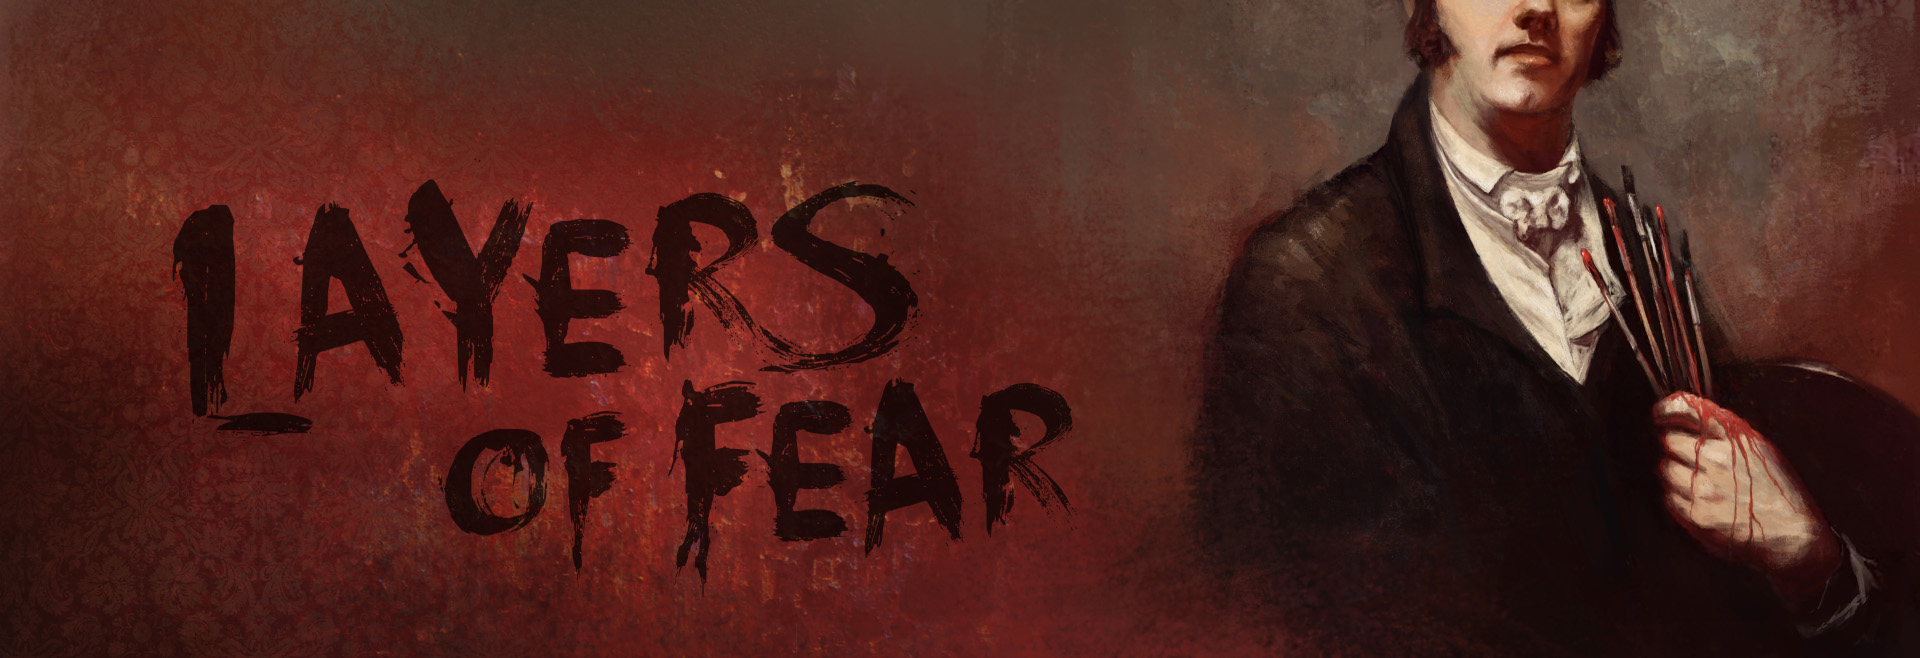 Layers of Fear - VGPRofessional Review (19)